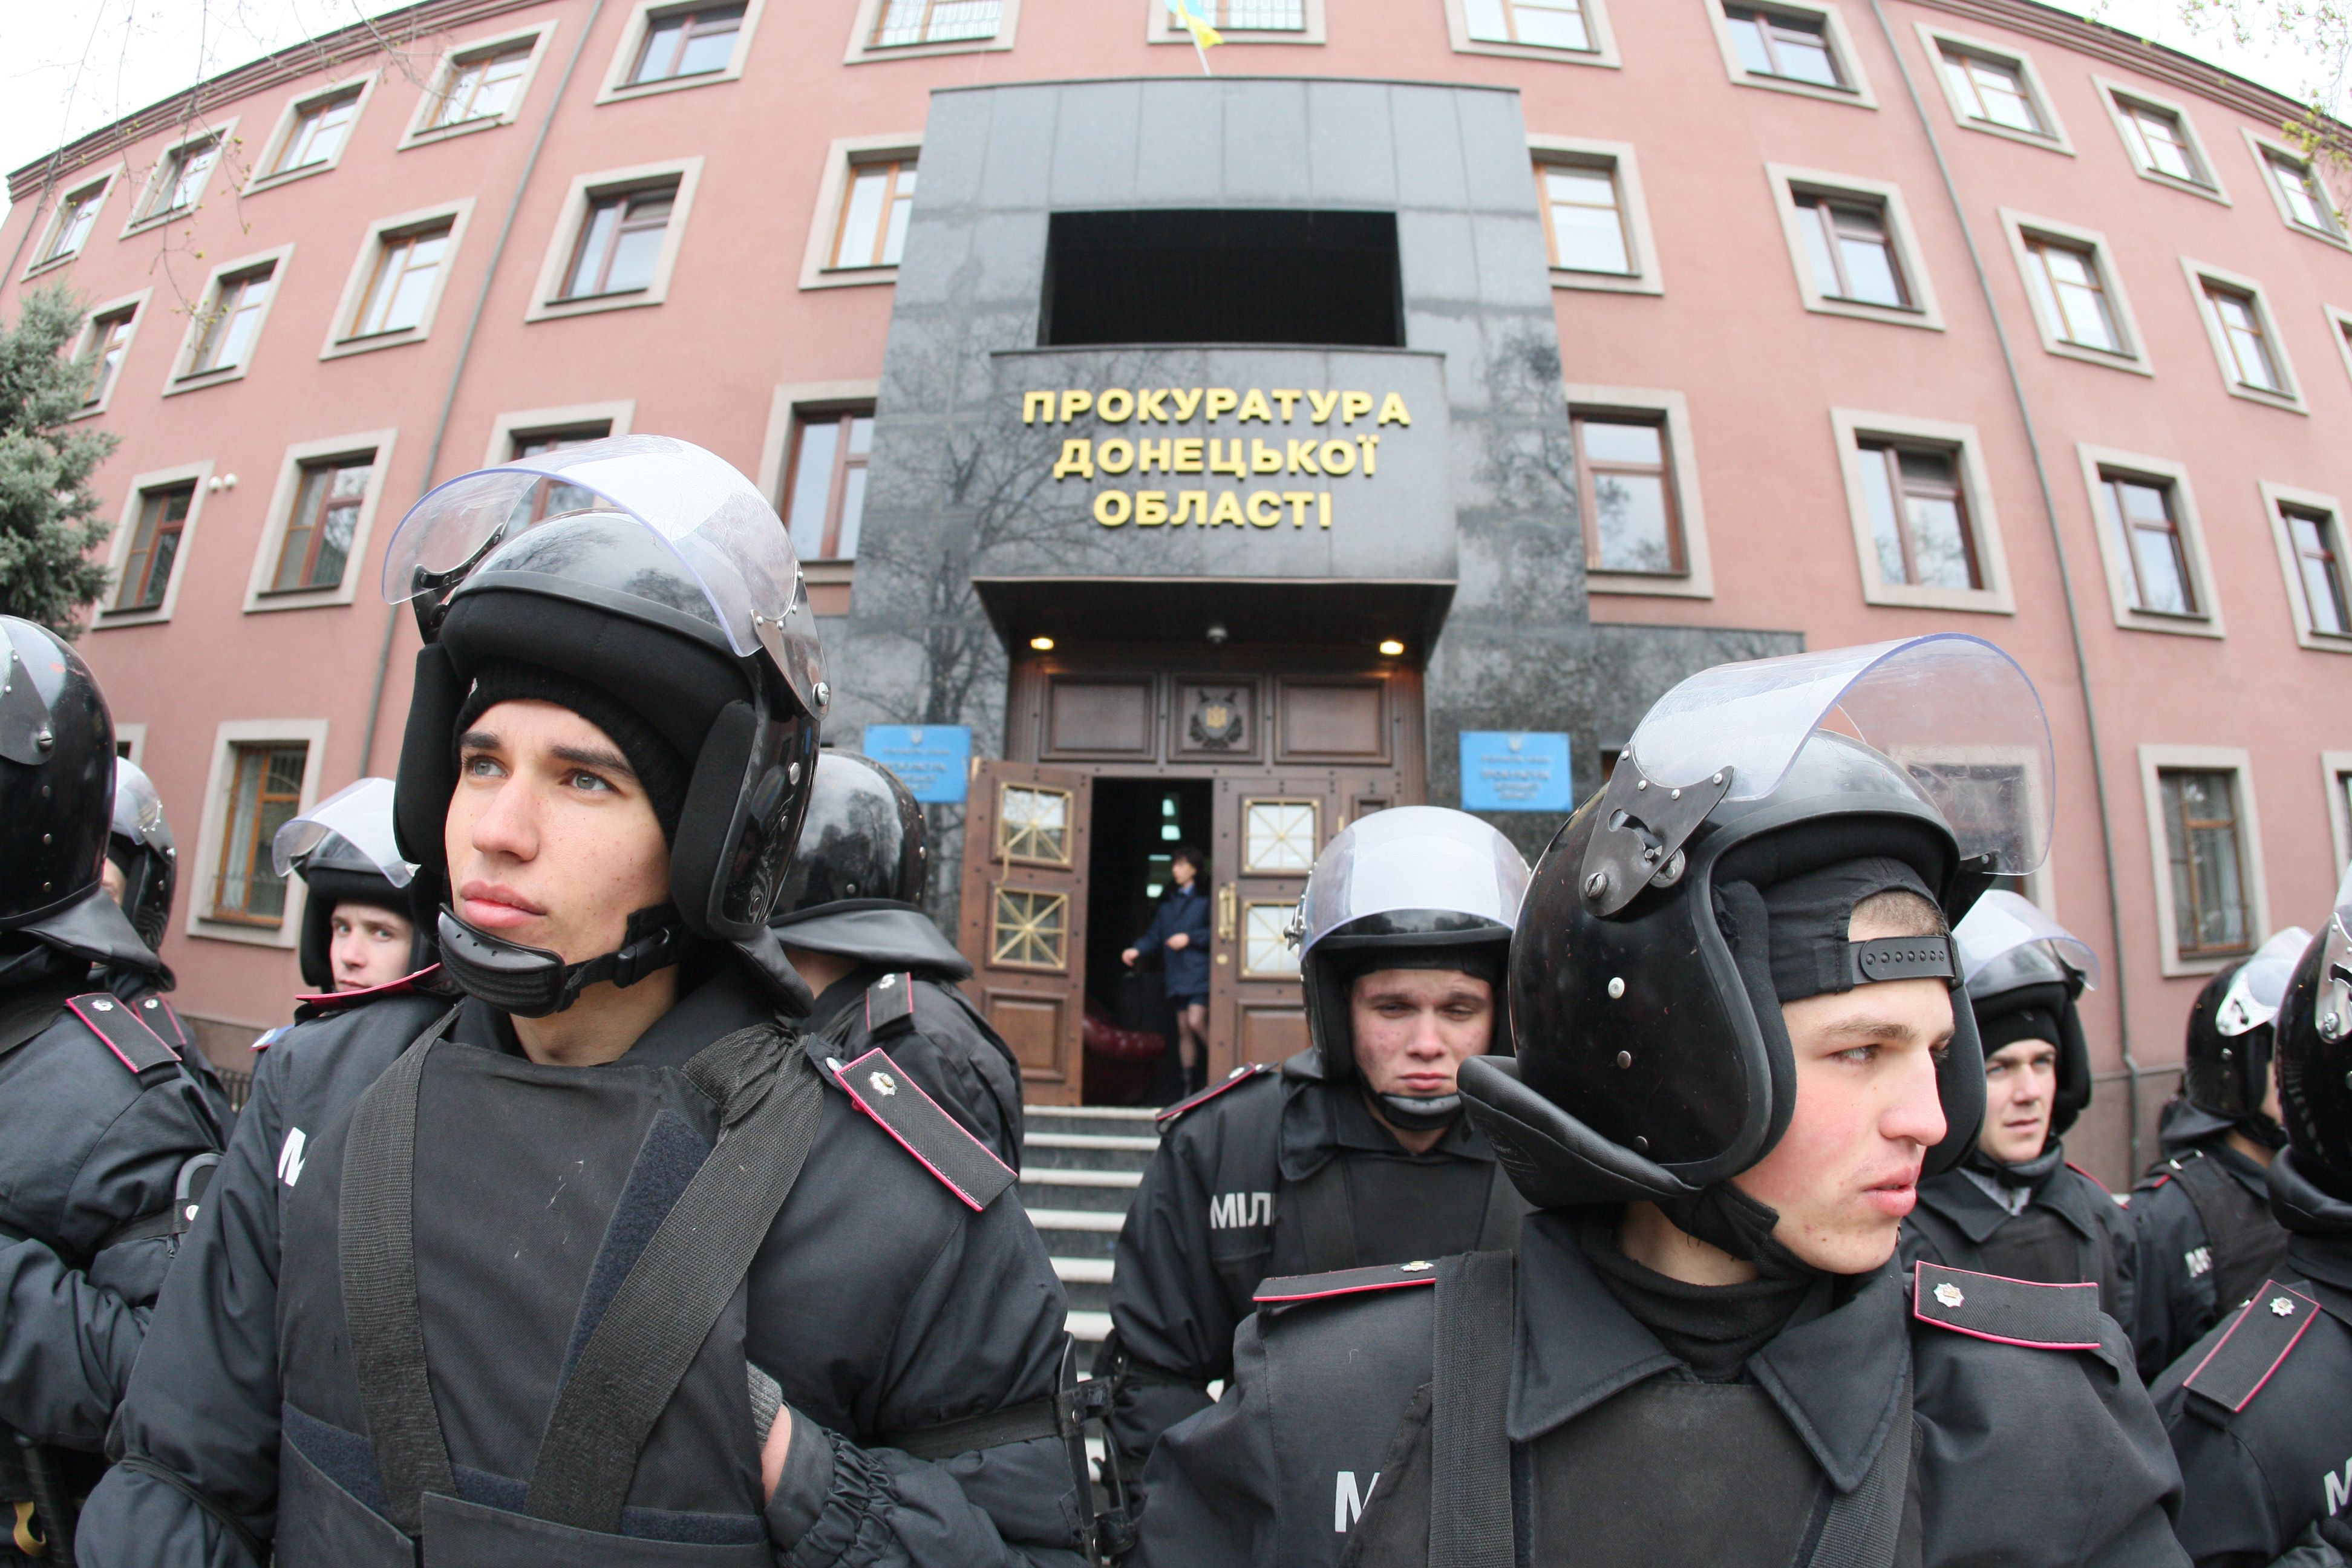 Policemen guard a regional Ukrainian procecutor's office in the eastern Ukrainian city of Donetsk on April 12, 2014. The separatists attempted to seize the prosecutors office  AFP PHOTO / ALEXANDER KHUDOTEPLY